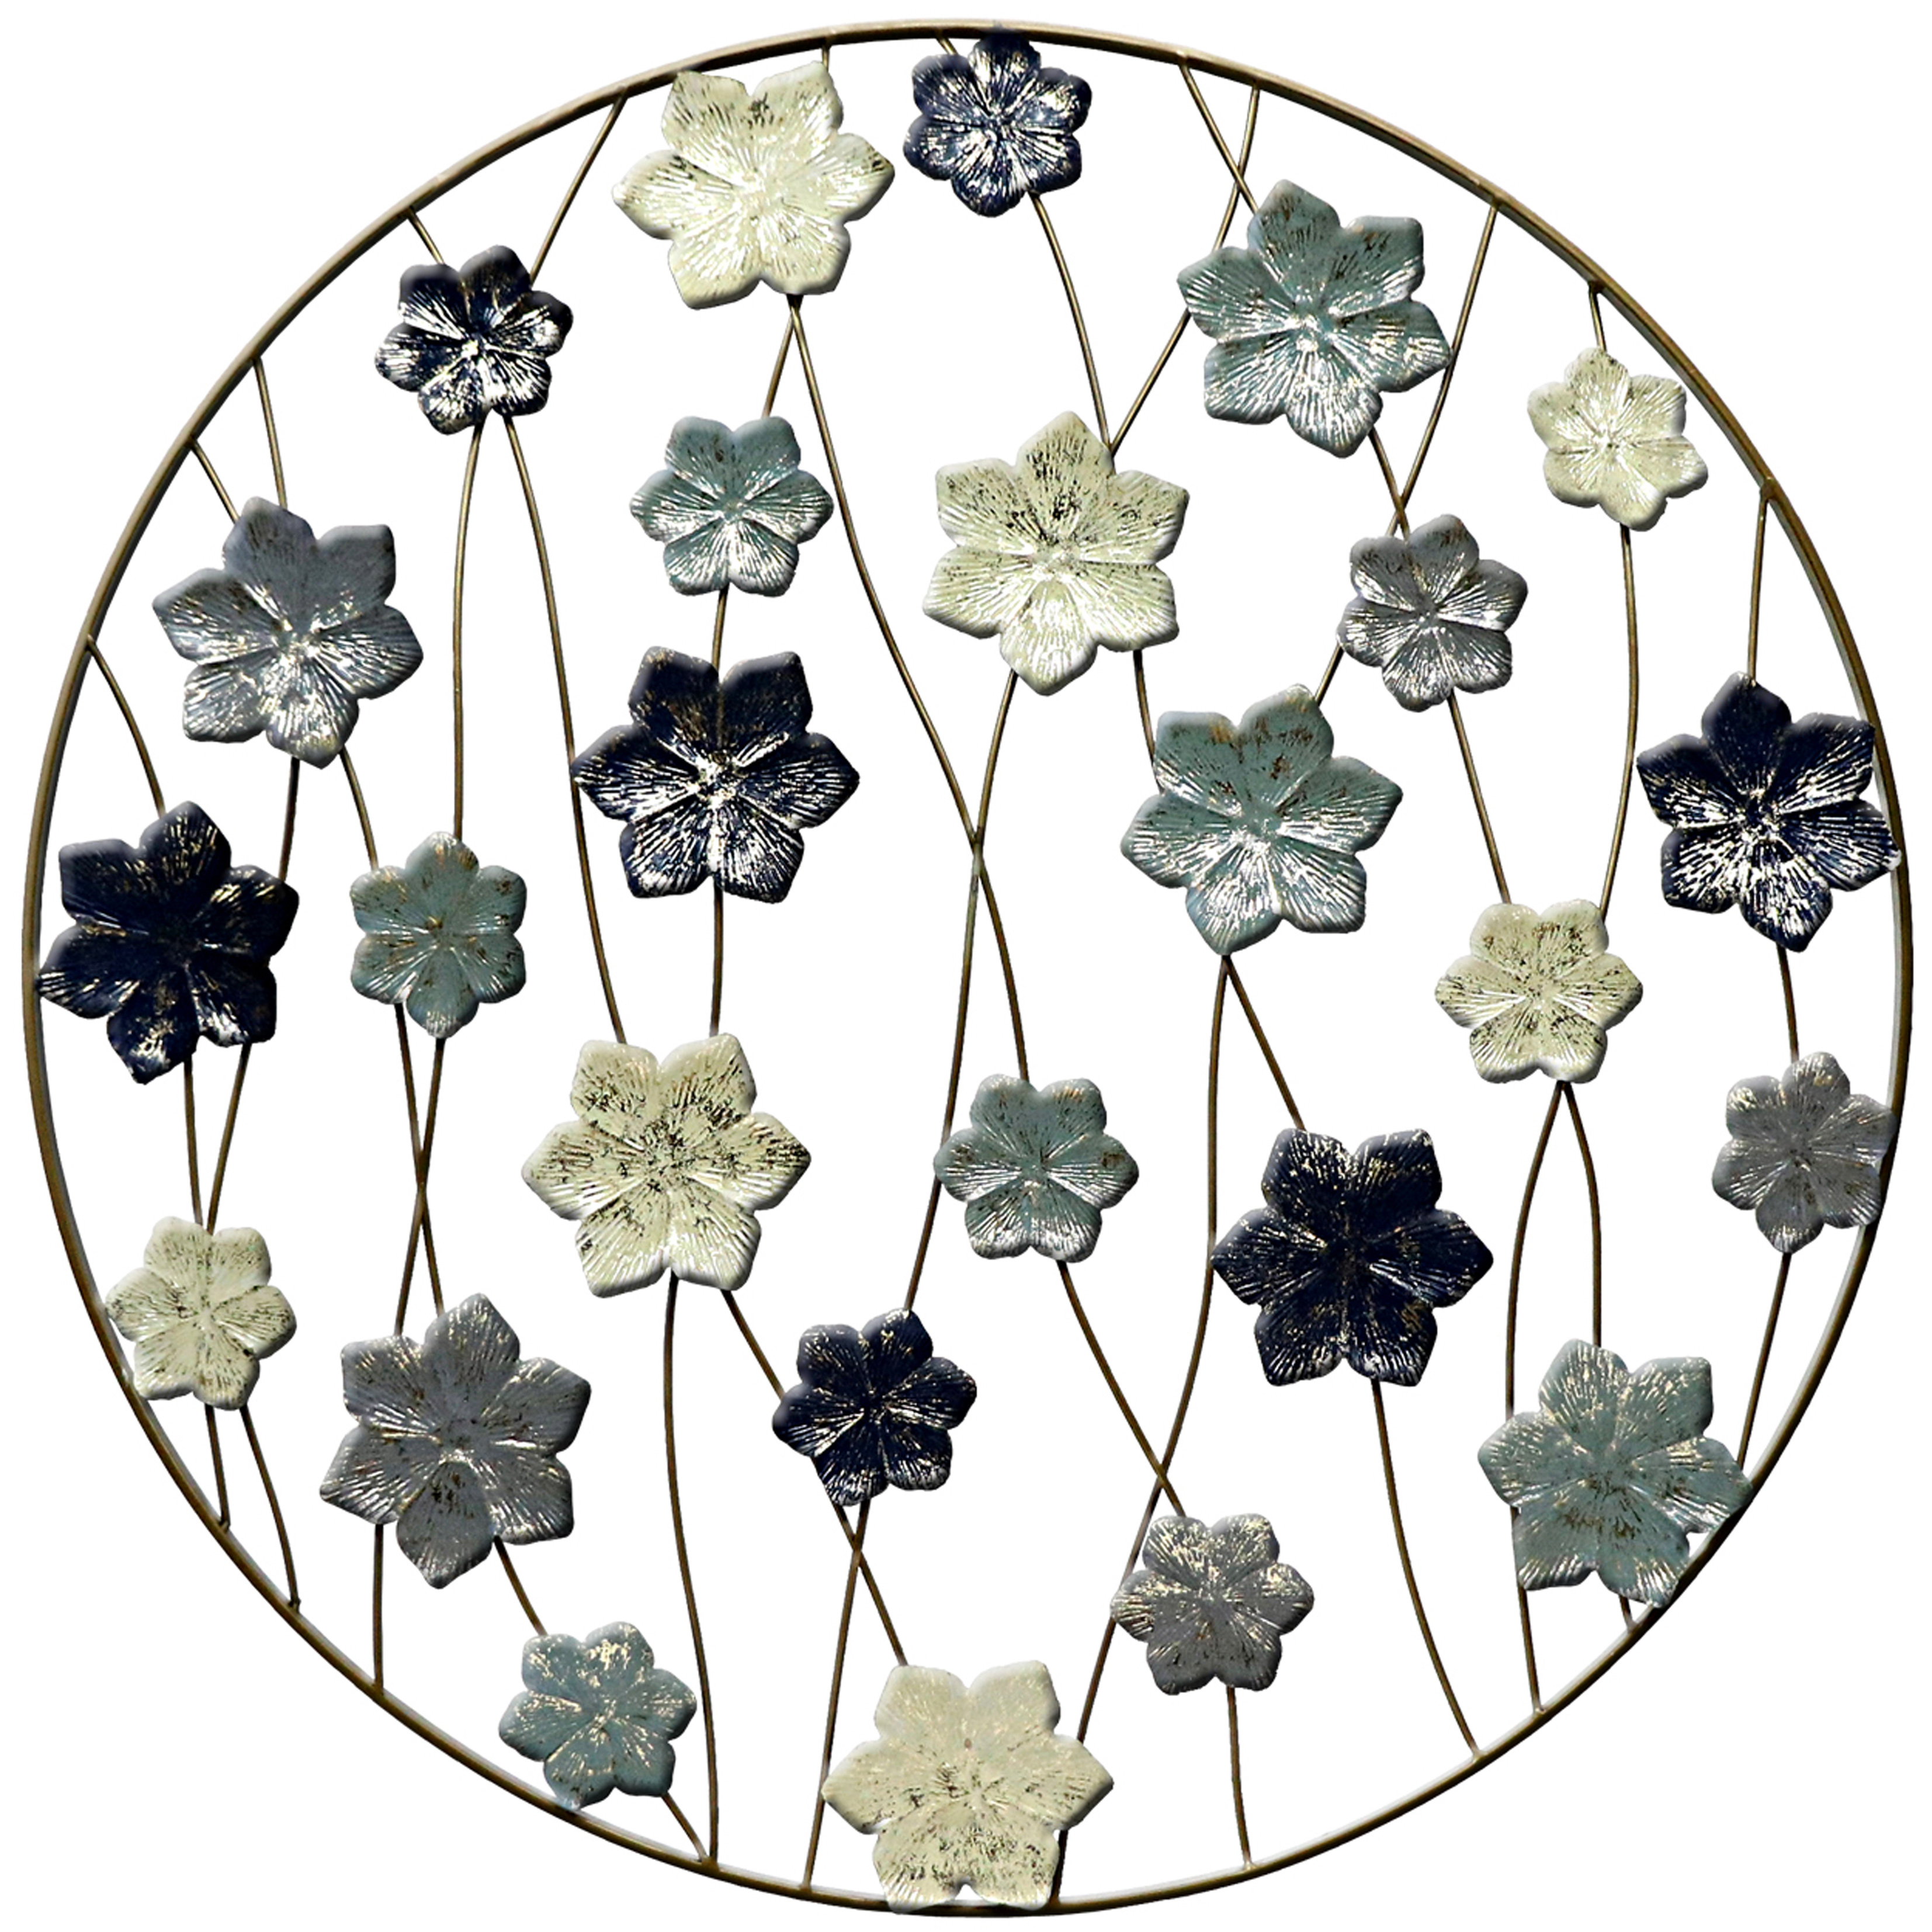 Metal Wall Art Uk | Page 1 Intended For Flower Urban Design Metal Wall Decor (View 19 of 30)